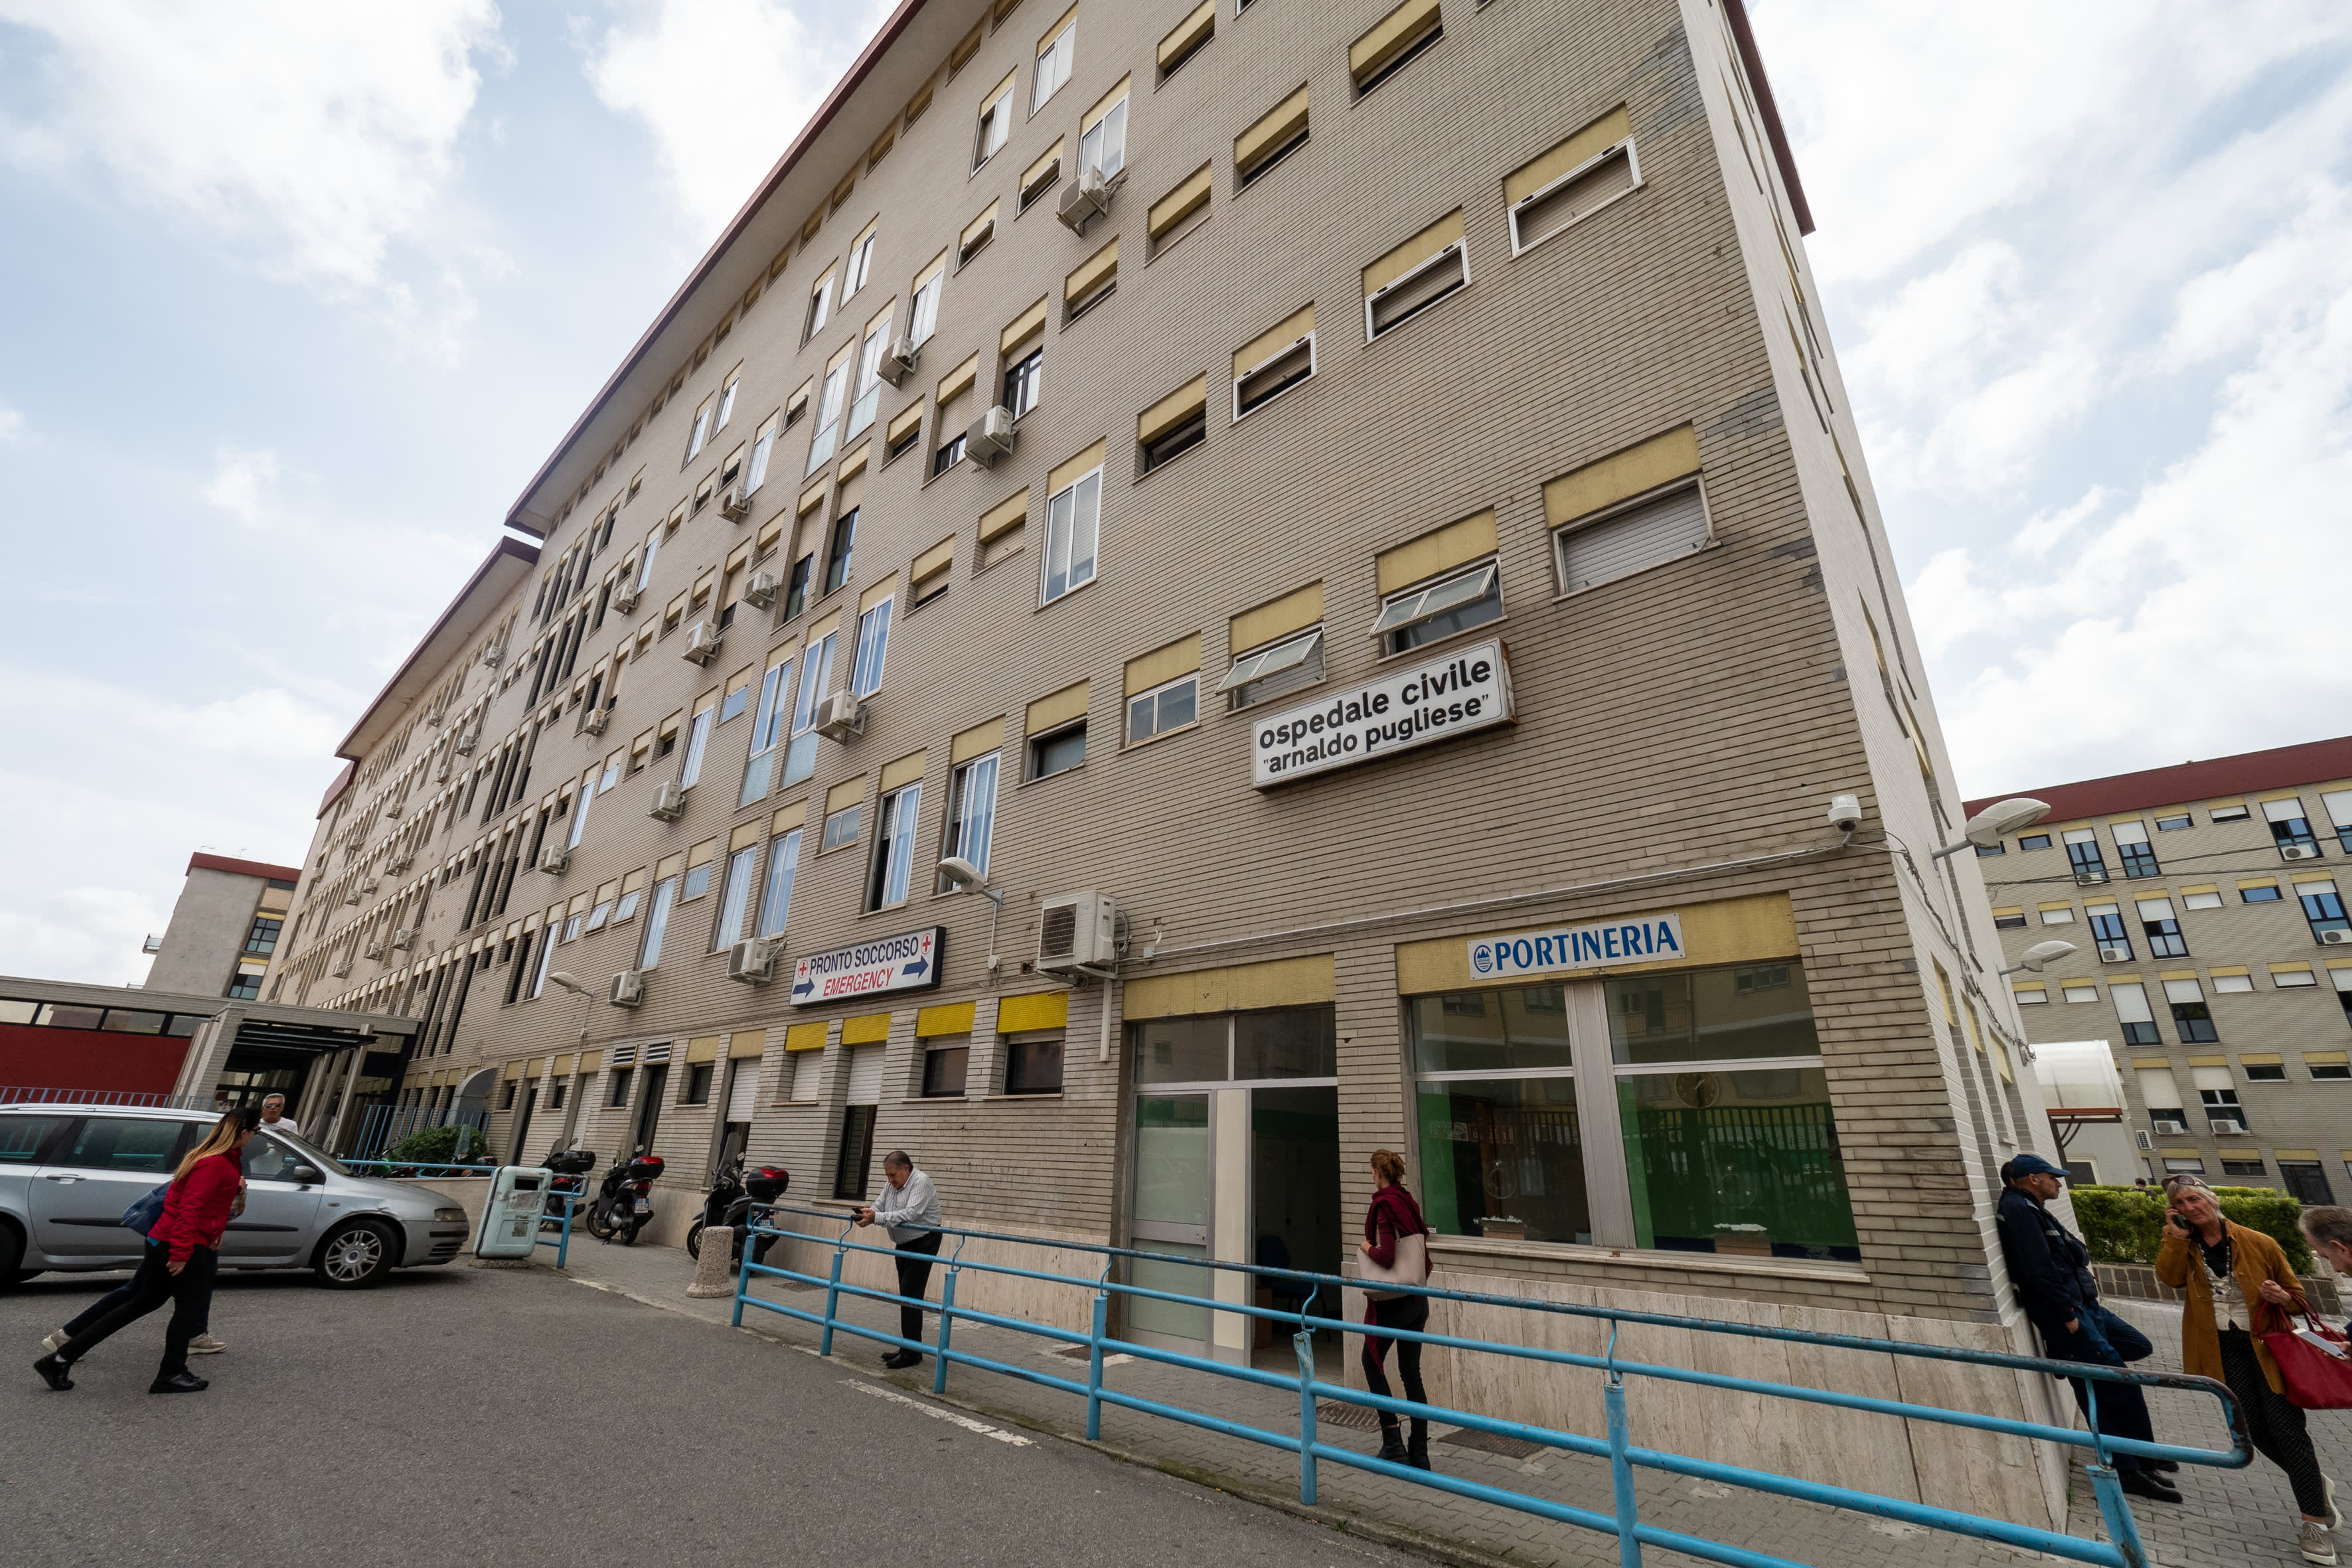 Italian hospital worker reportedly took home nearly 0,000 despite skipping work for 15 years